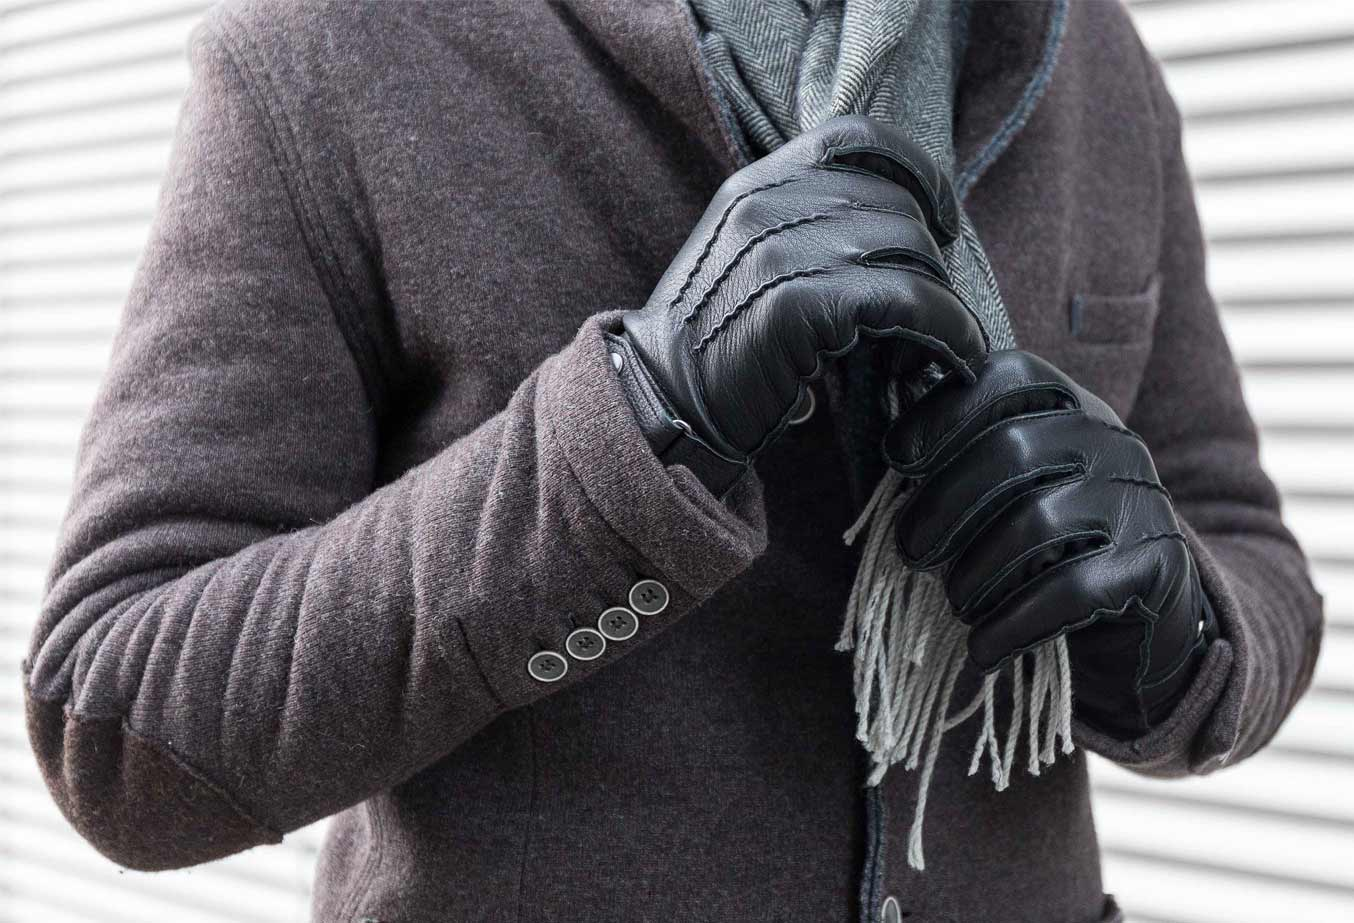 Sheepskin Is The Ideal Choice For Rugged Winter Gloves